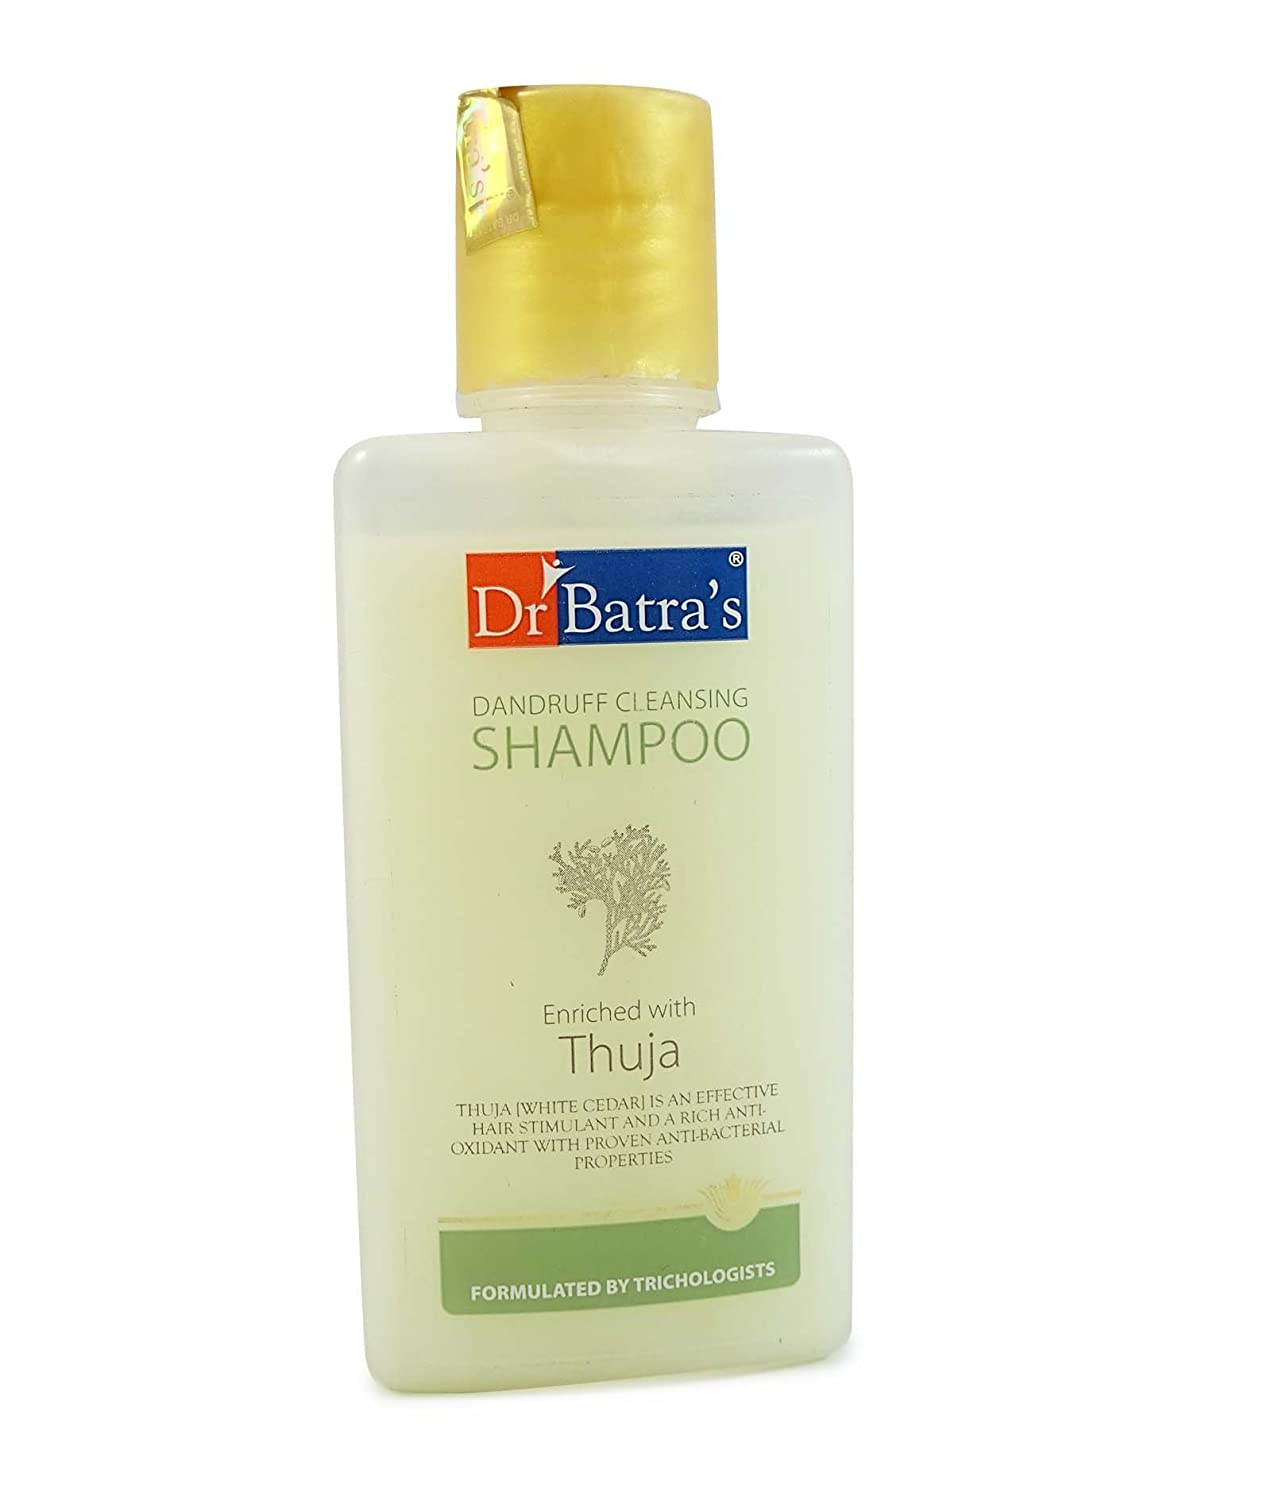 Dr Batra's Dandruff Cleansing Shampoo Enriched With Thuja For Silky Hair 200ml